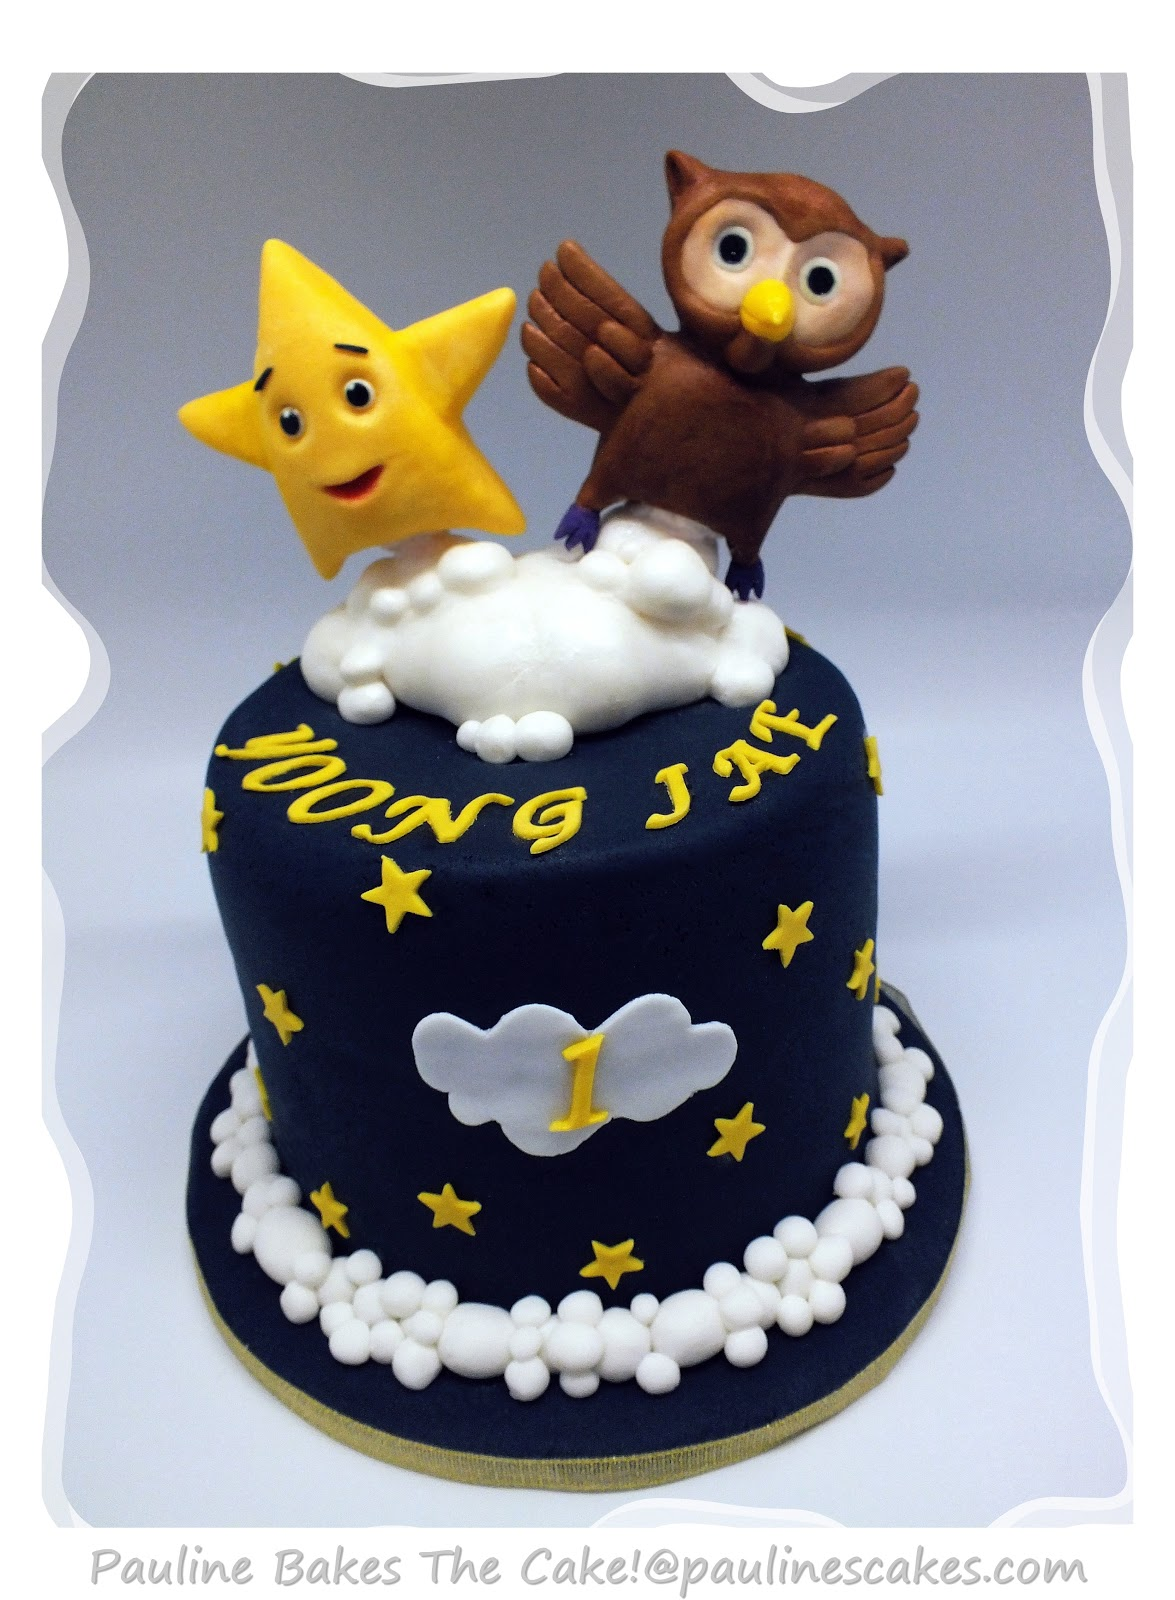 Pauline Bakes The Cake Twinkle Twinkle Little Star And Owl Cake